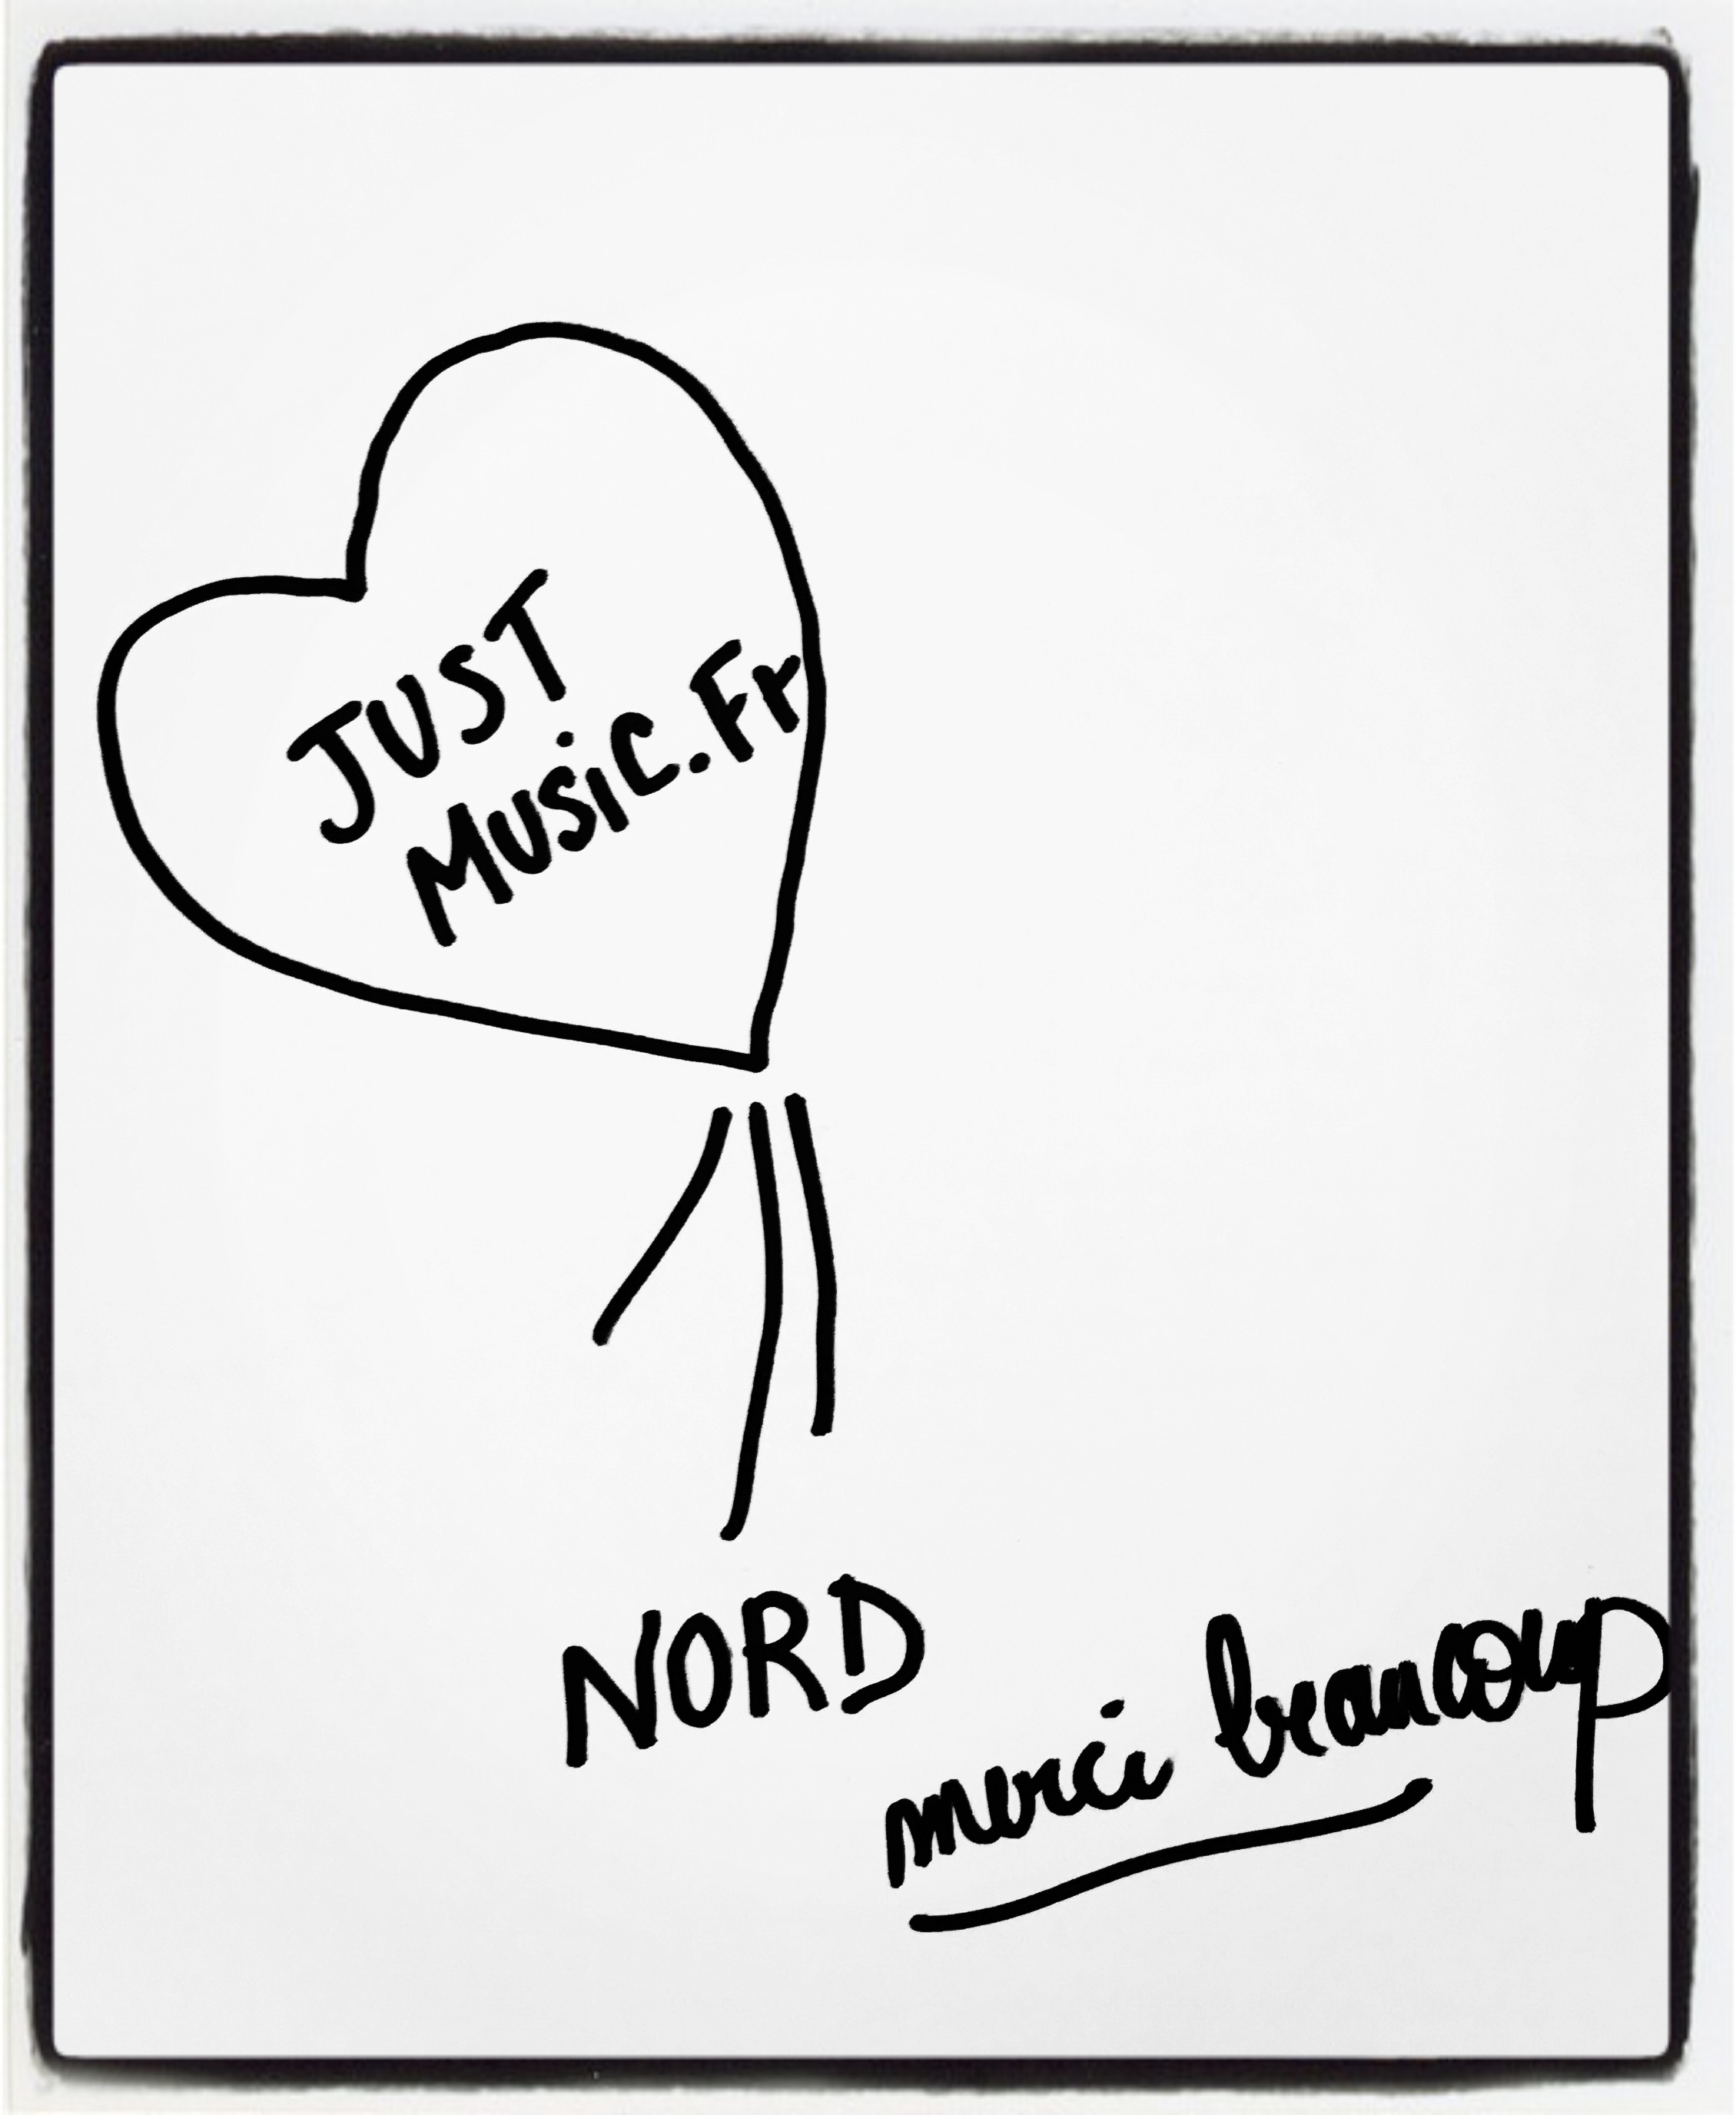 Nord Dédicace JustMusic.fr.